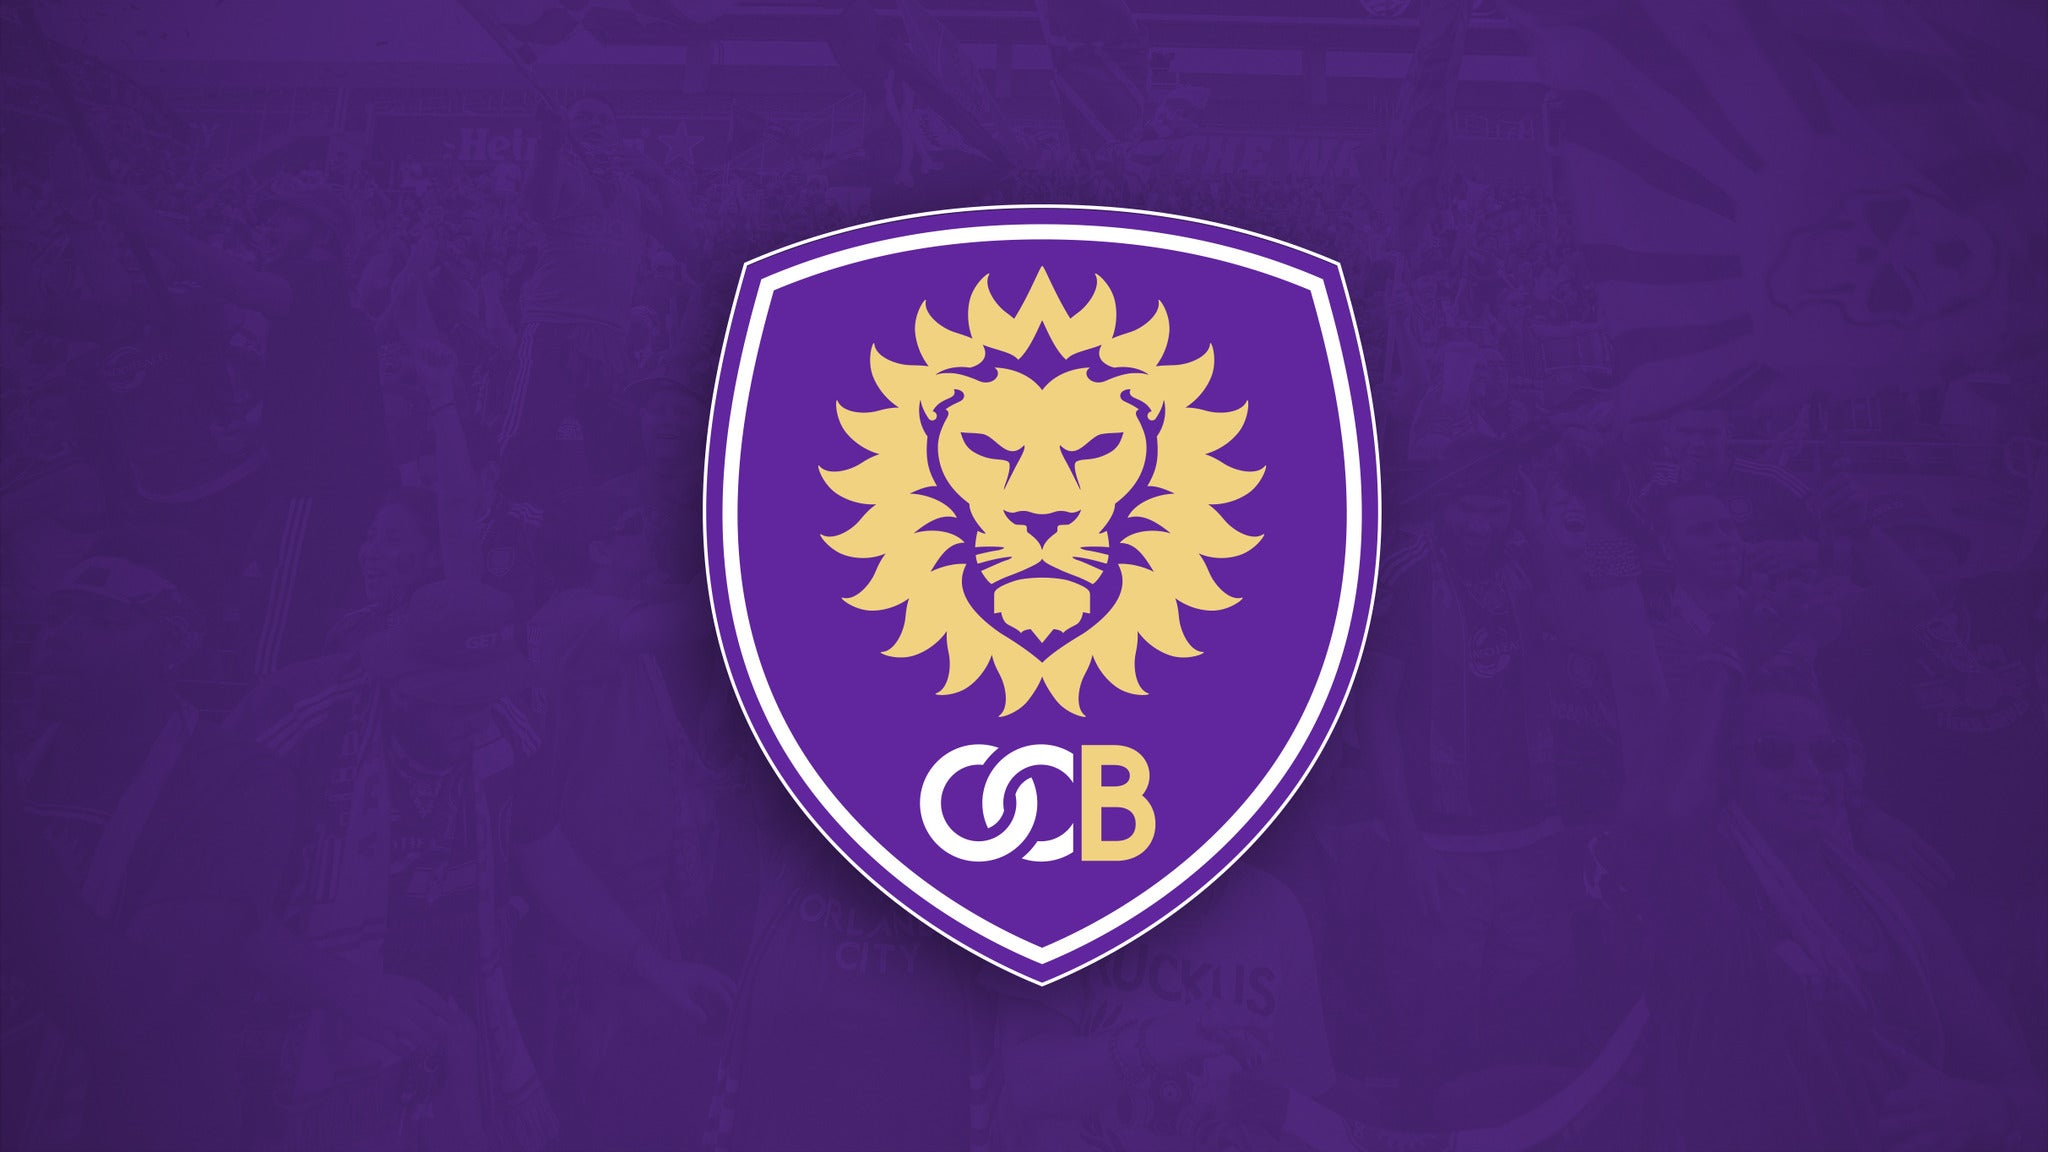 Orlando City B vs. Greenville Triumph SC